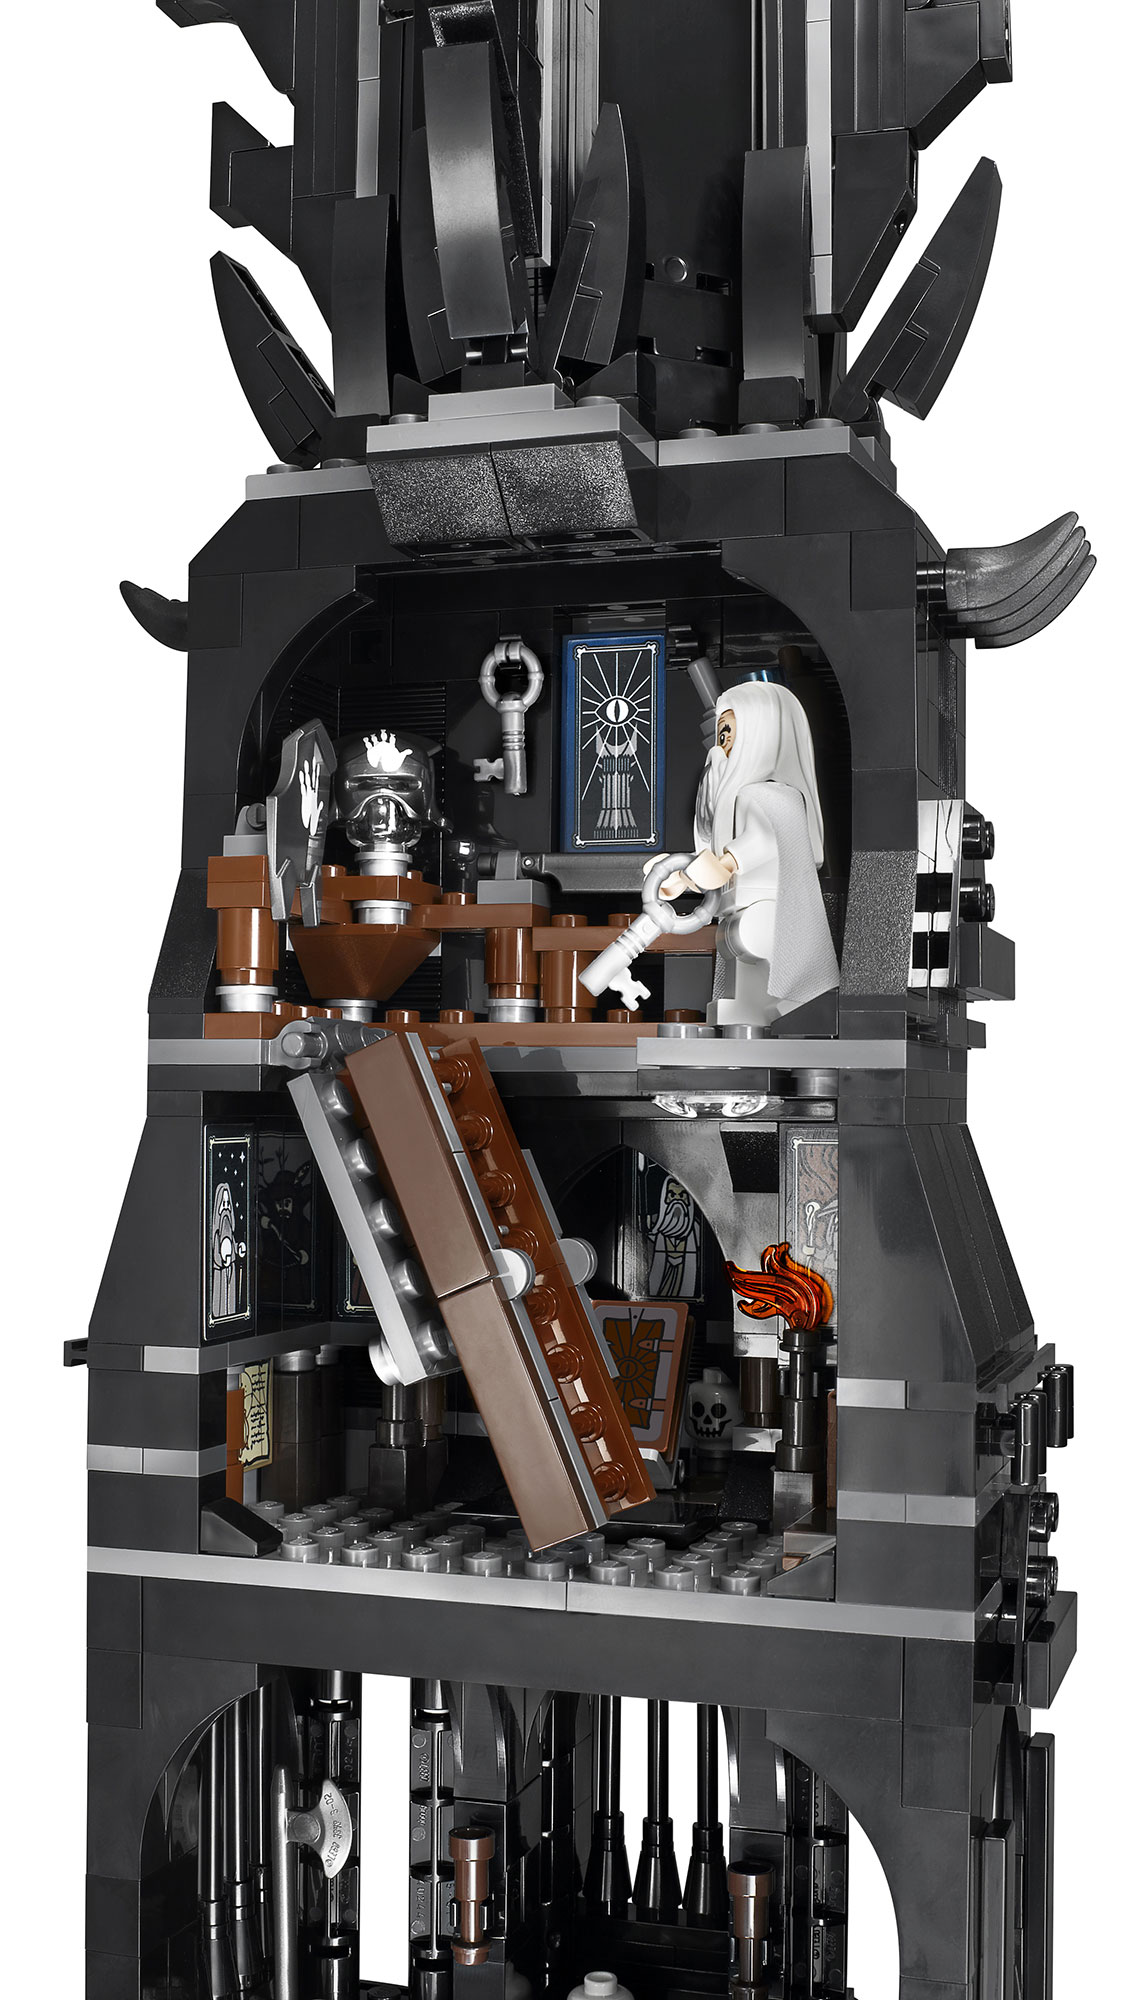 LEGO-Tower-Of-Orthanc-10237-Tower-Stairs